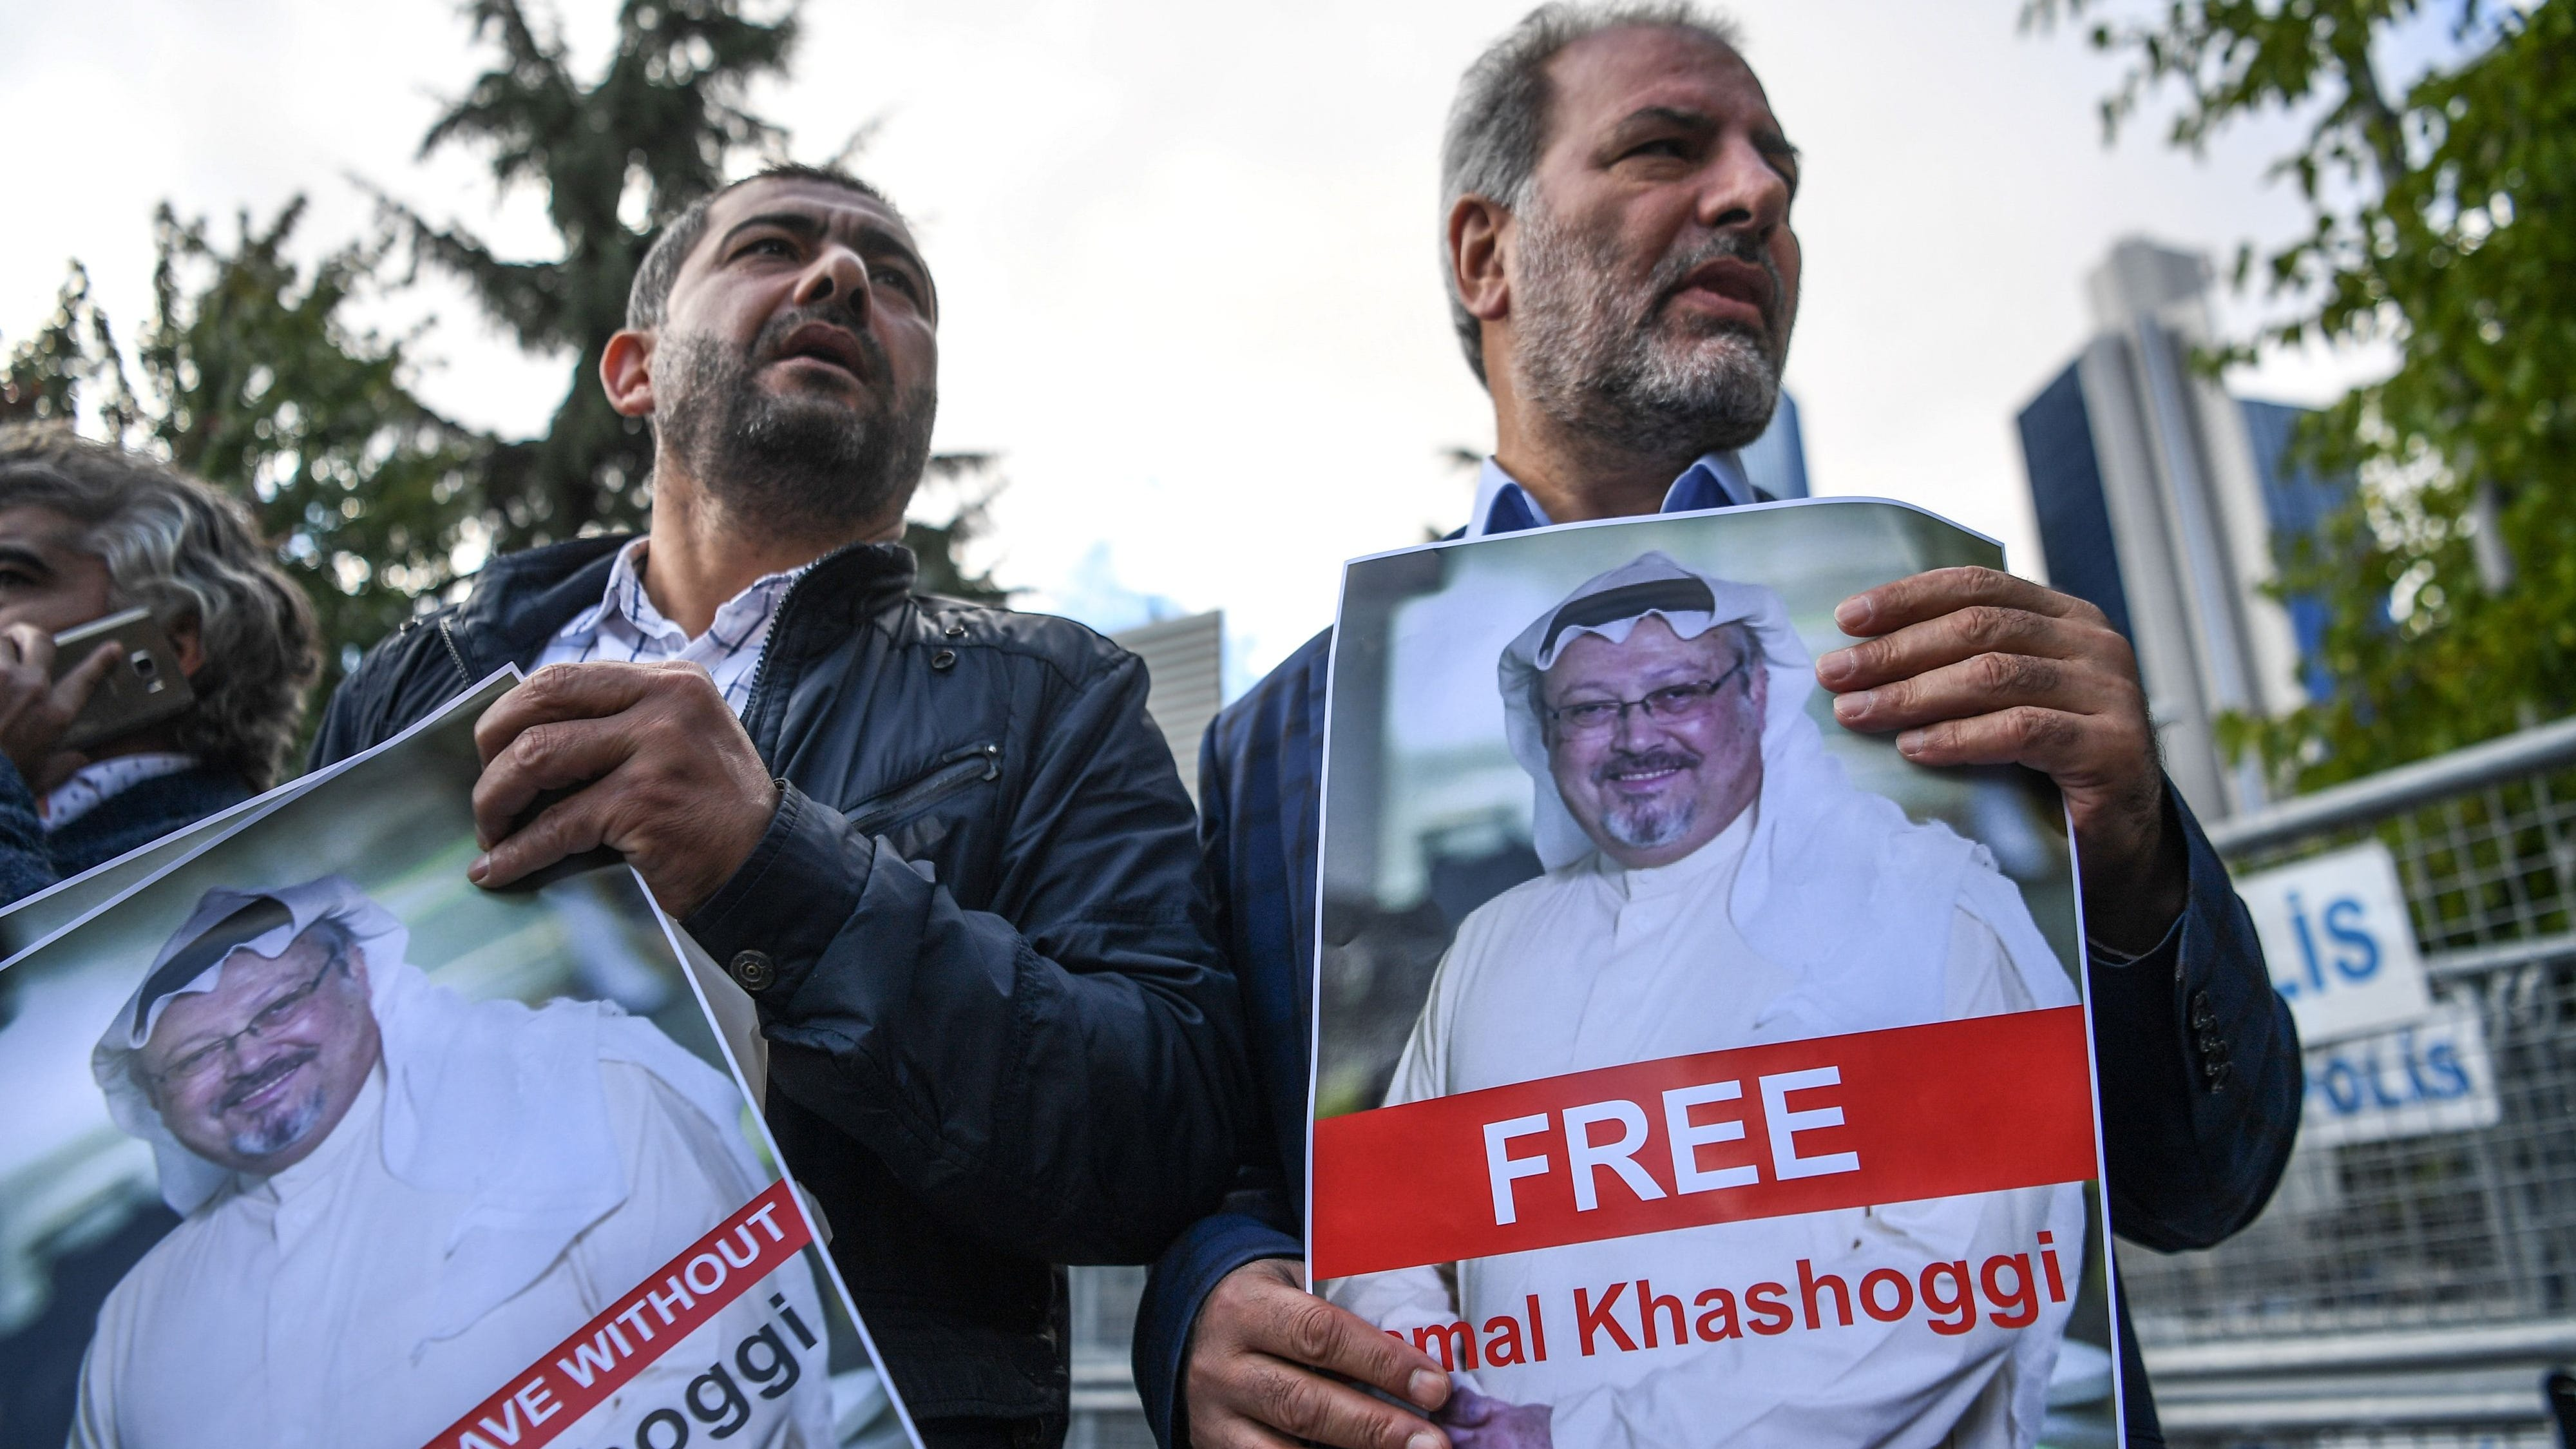 Protestors hold pictures of missing journalist Jamal Khashoggi during a demonstration in front of the Saudi Arabian consulate, on October 5, 2018 in Istanbul.